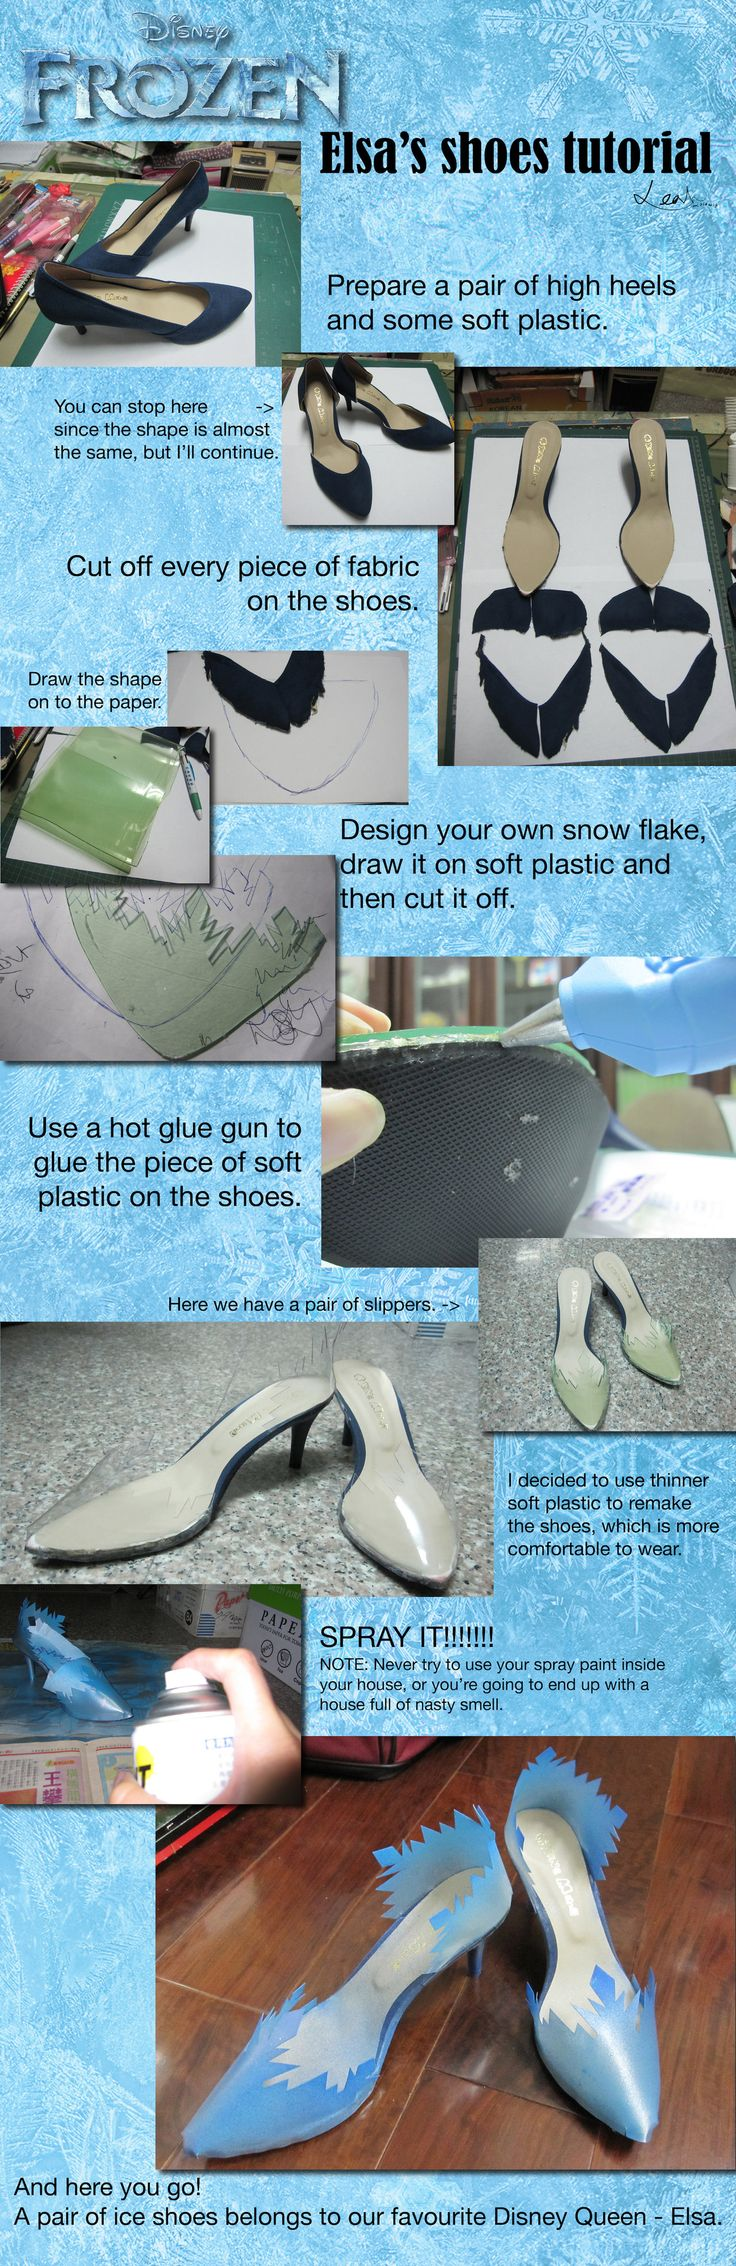 Elsa Shoes Tutorial Eng. ver. by pisces219320.deviantart.com on @deviantART ... This is just good reference!